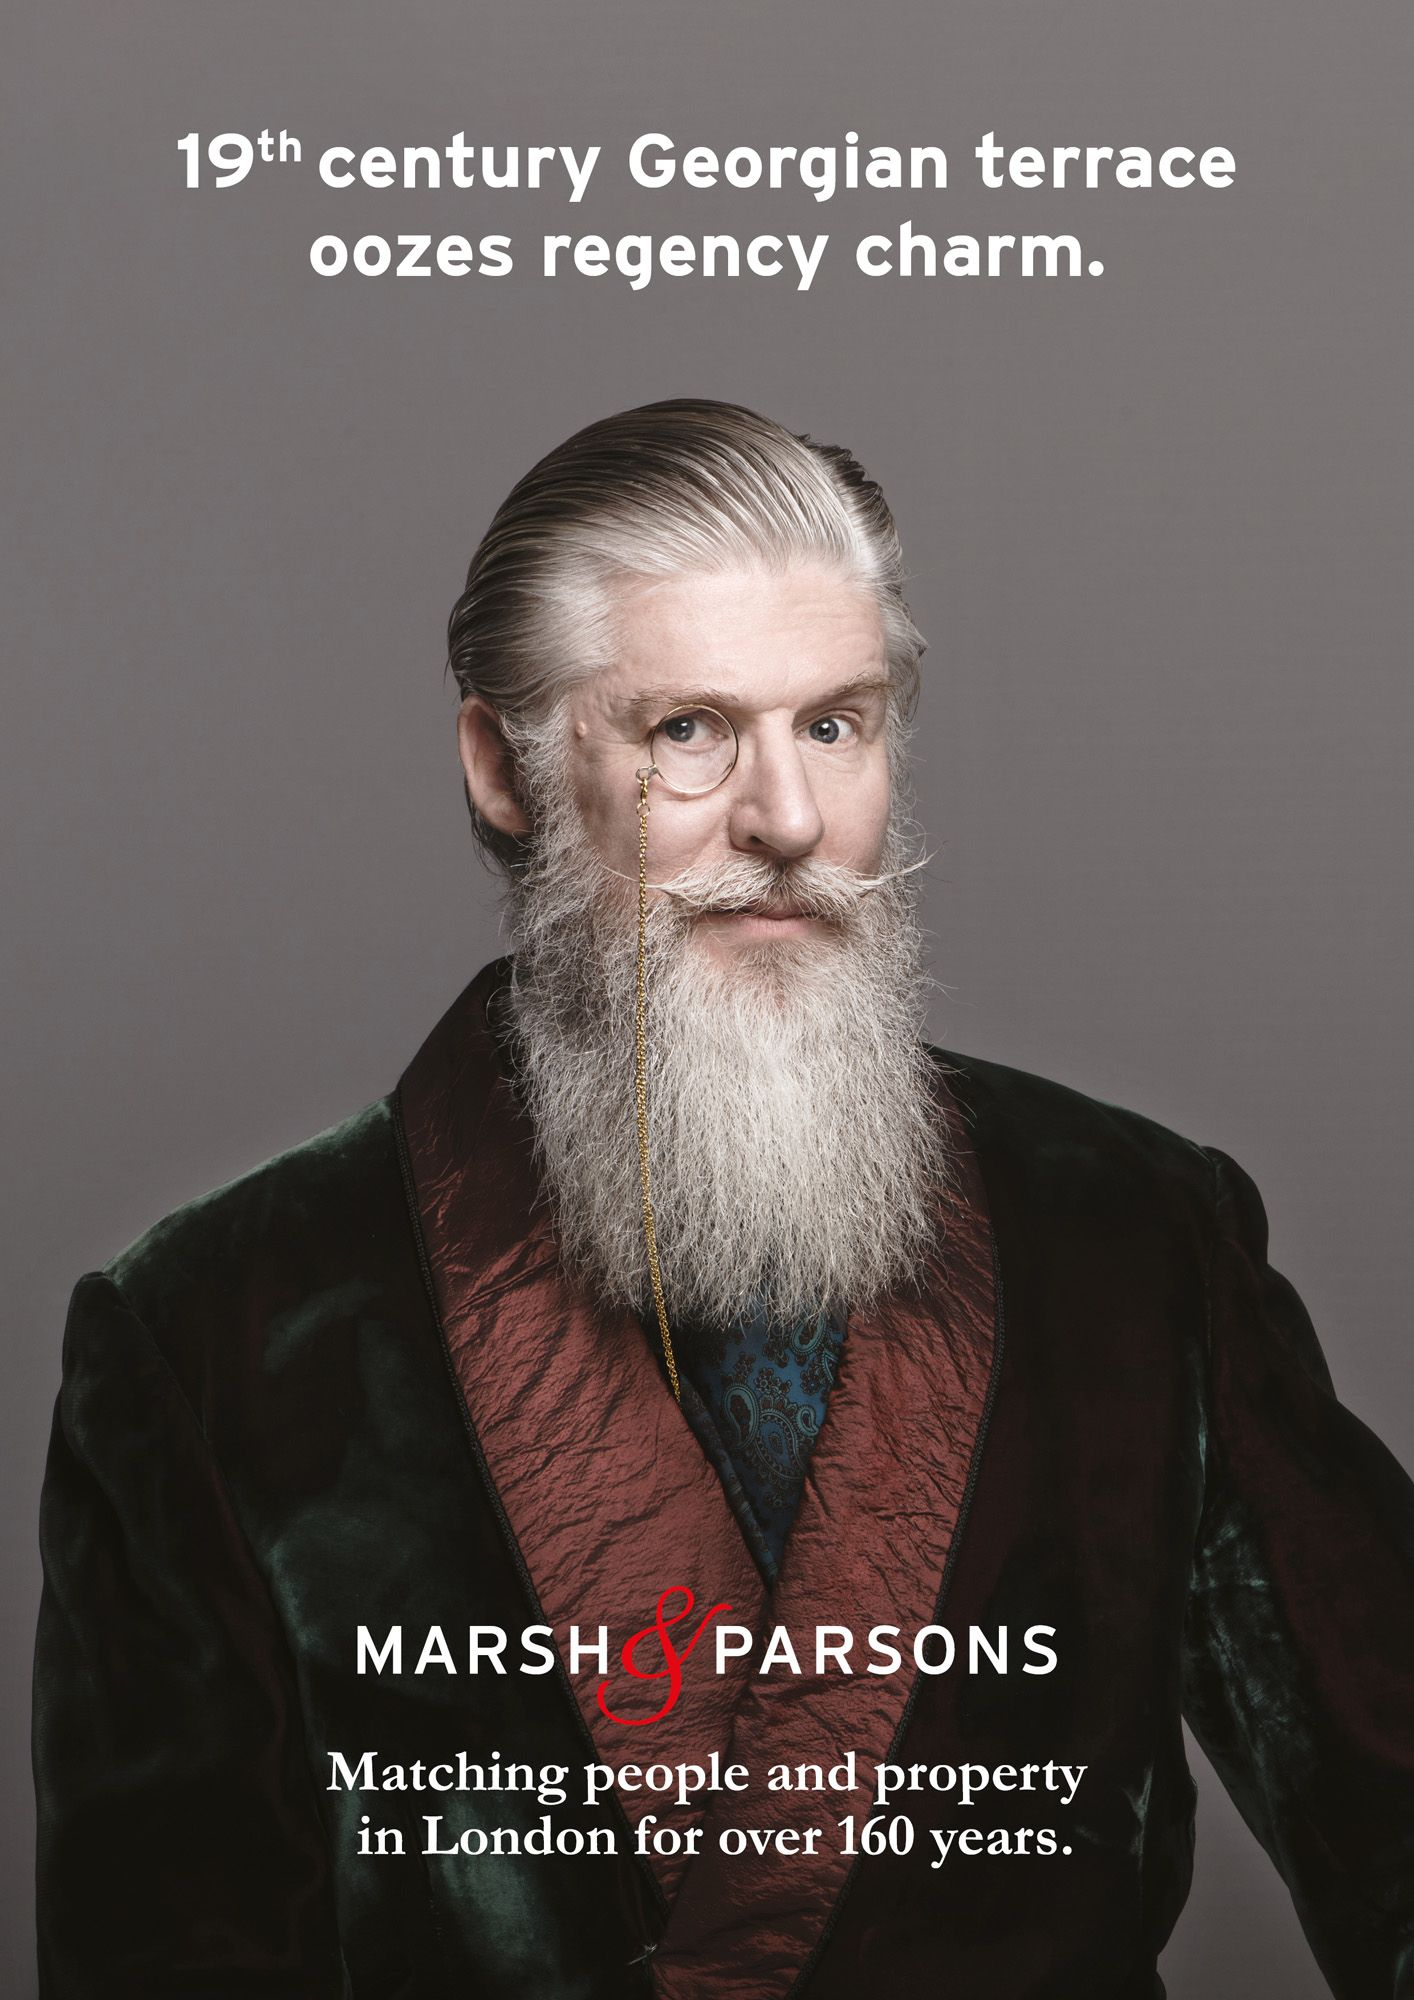 regency-marsh-parsons-photo-lorentz-gullachsen.jpg